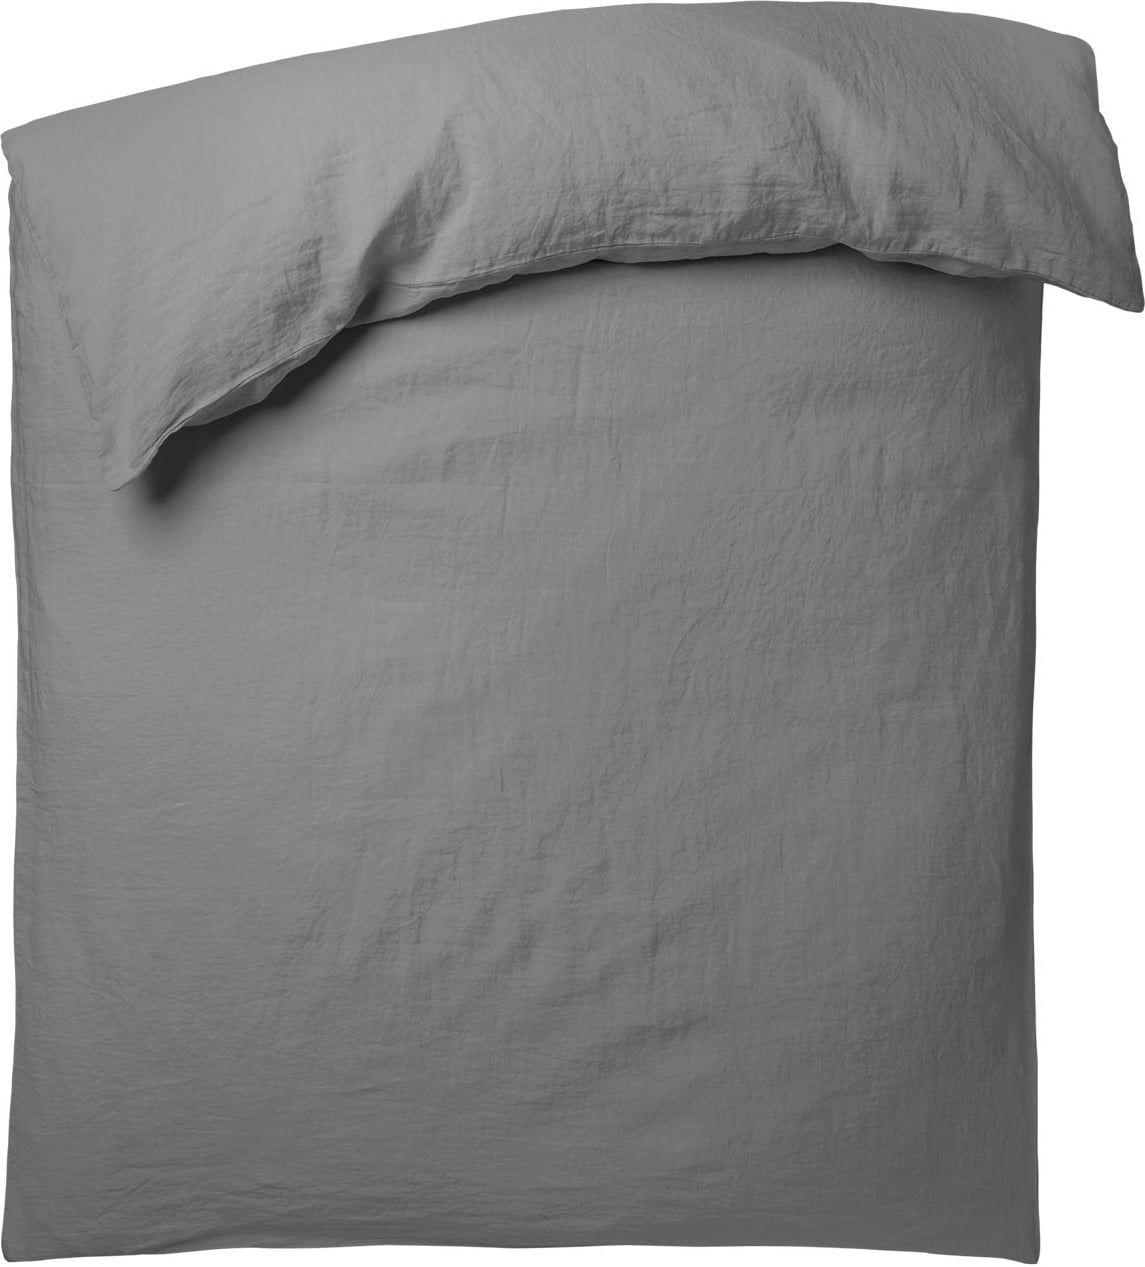 Bettbezug 155x220 Bettbezug Stay 155x220 Cm Interismo Onlineshop